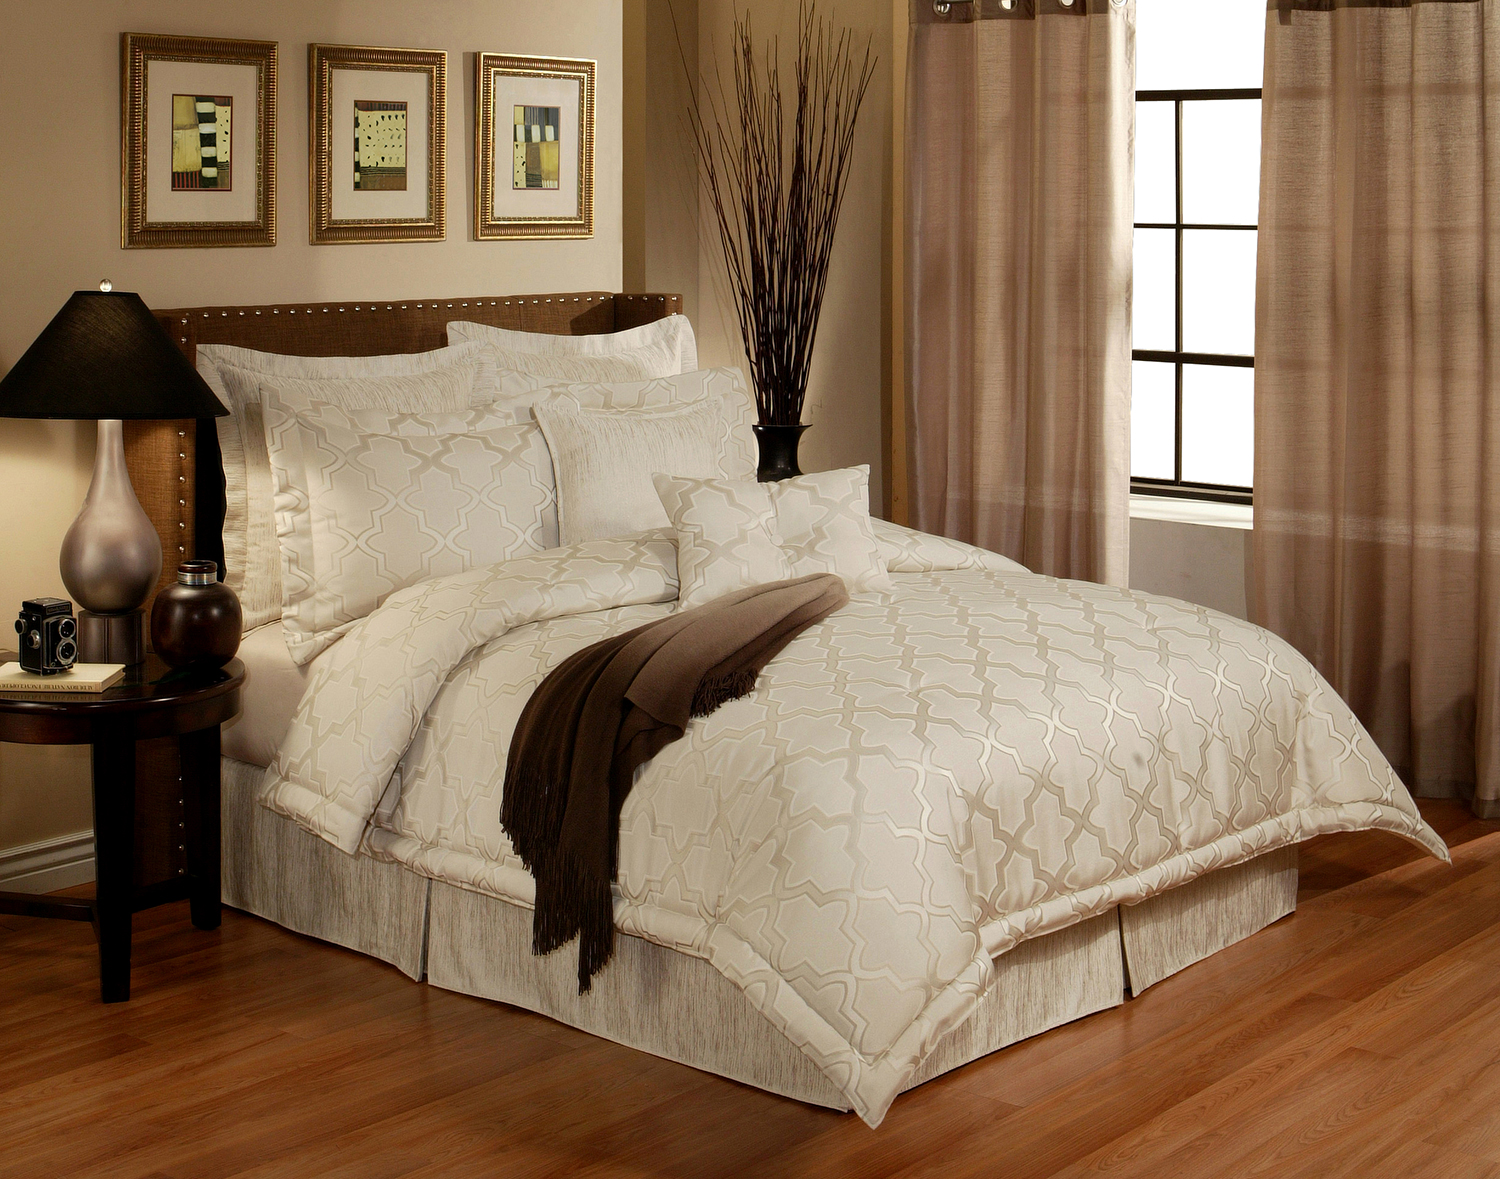 En Vogue Glamour Pearl by Austin Horn Luxury Bedding